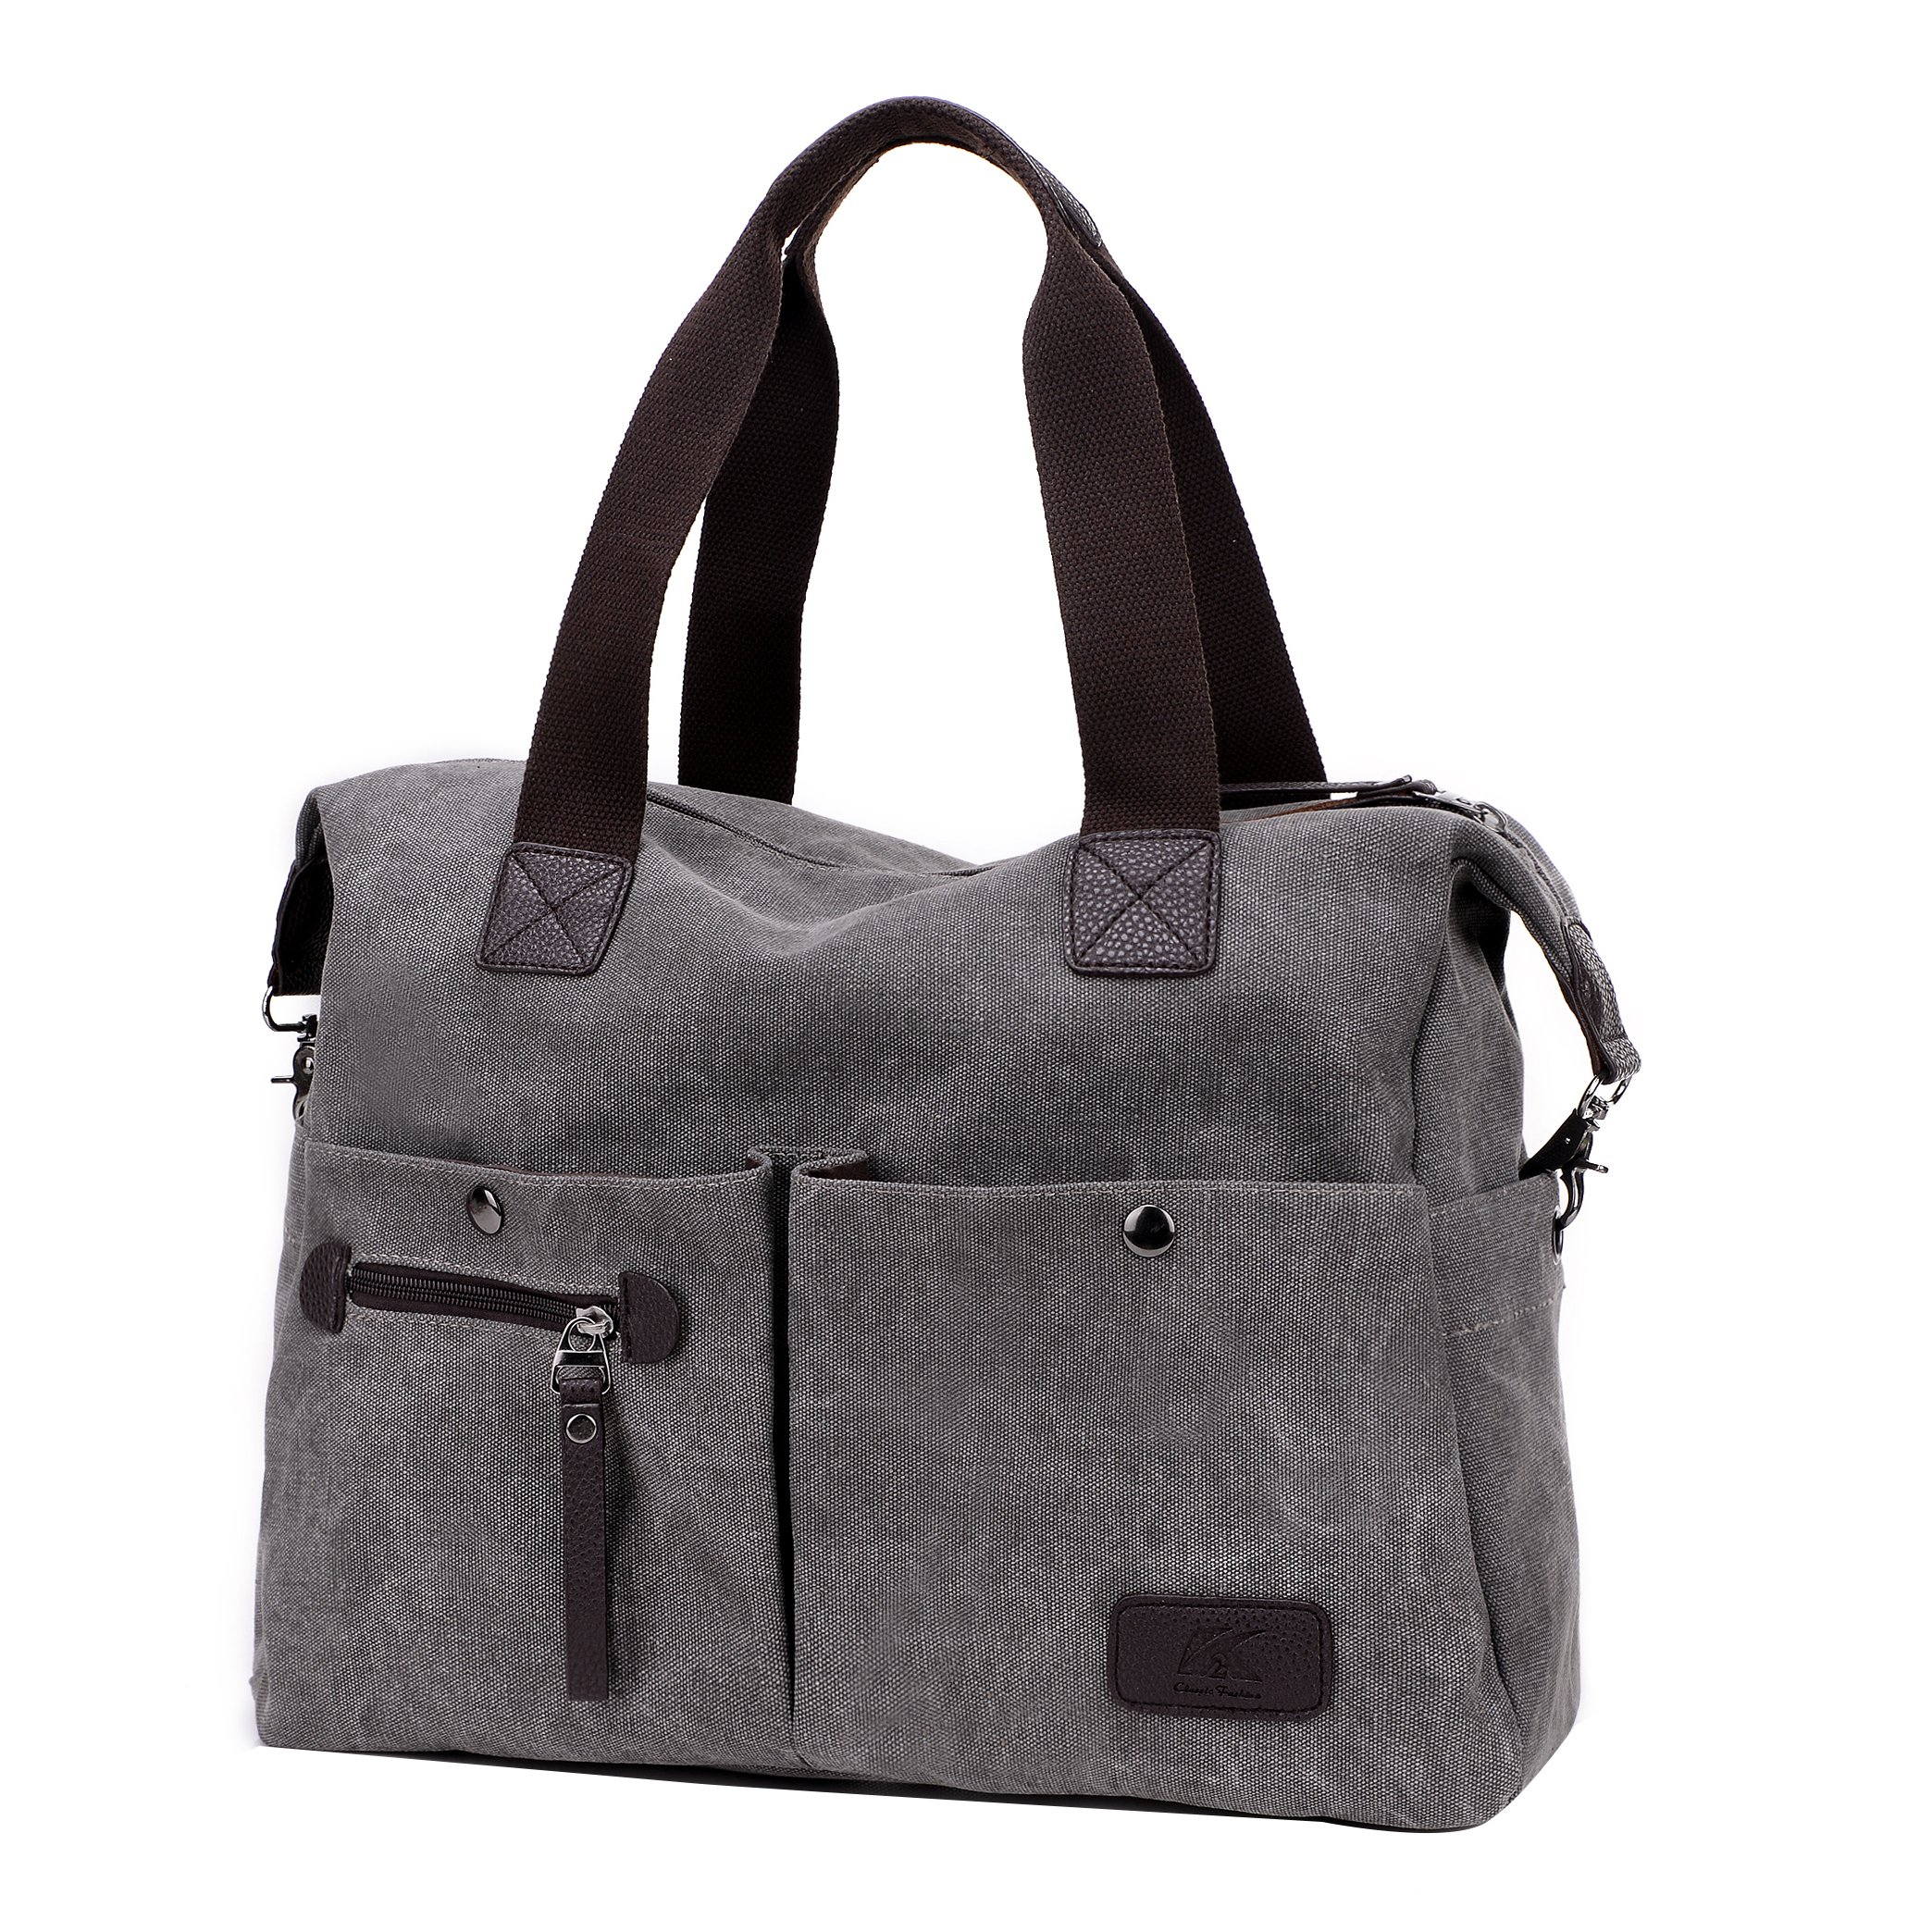 Lonson Unisex Canvas Shoulder Bag Big Travel Handbag Weekend Tote Bag (Gray)